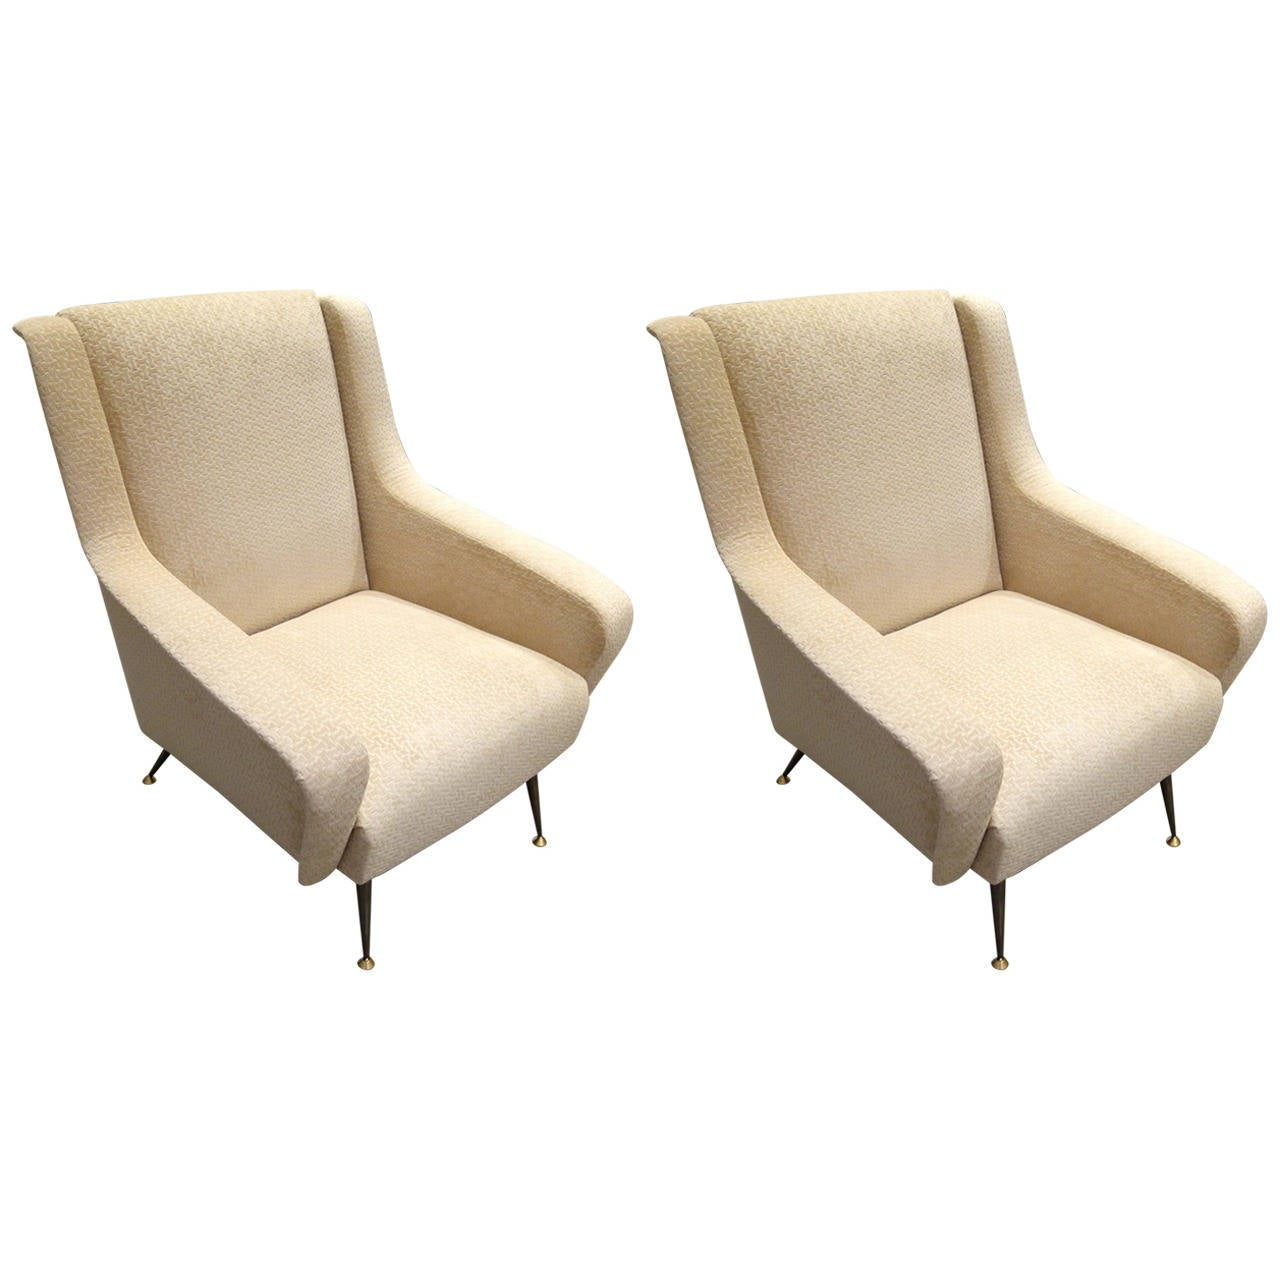 Pair of mid century modern italian sculptural lounge for Mid century modern armchairs